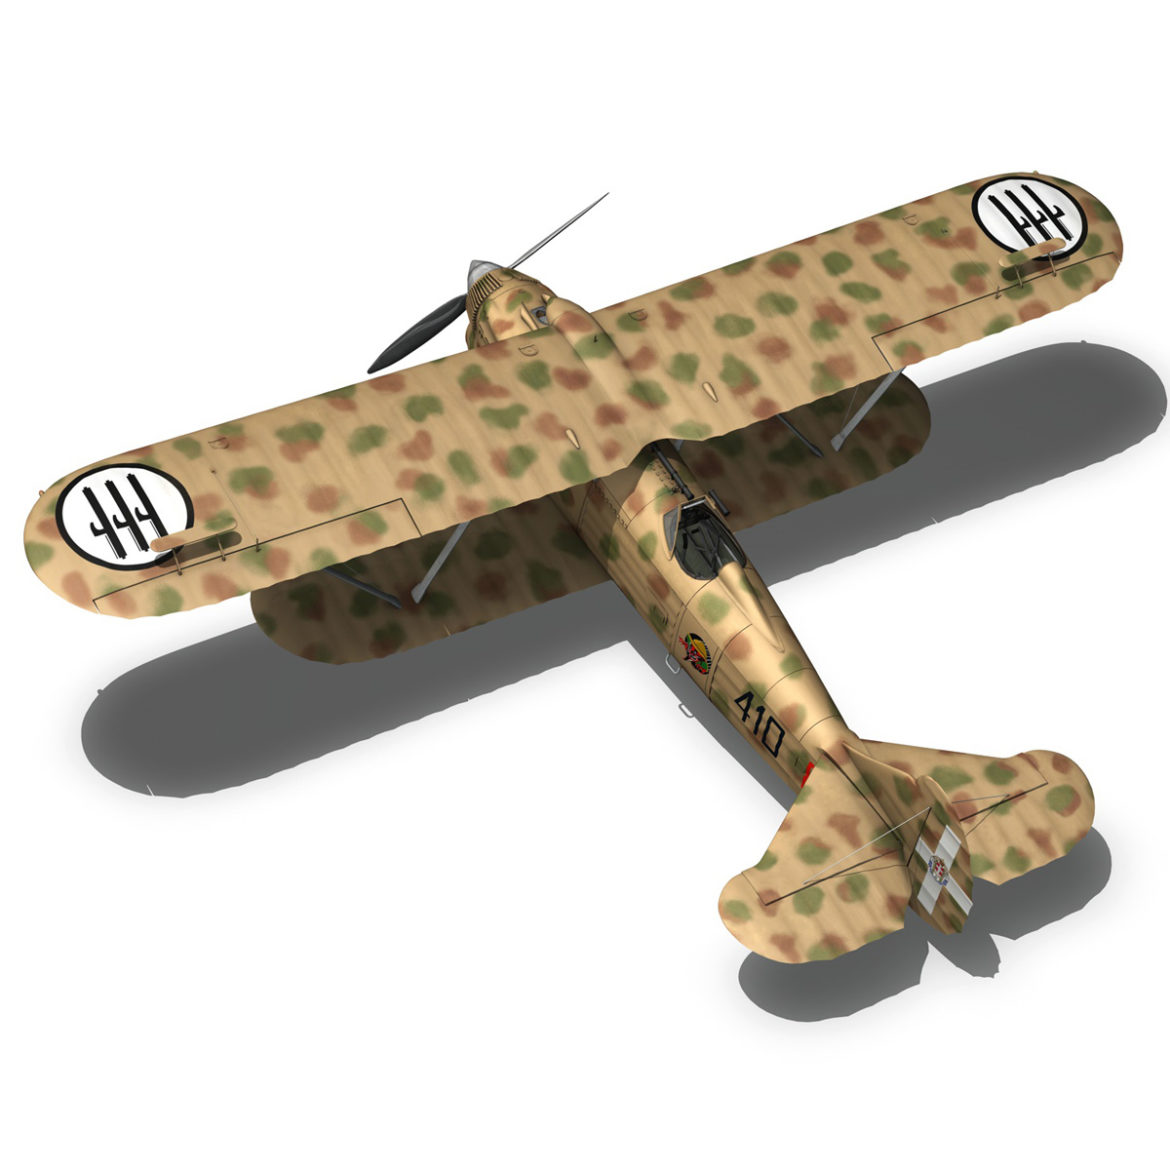 fiat cr.32 – italy airforce – 410 squadriglia 3d model fbx c4d lwo obj 307554